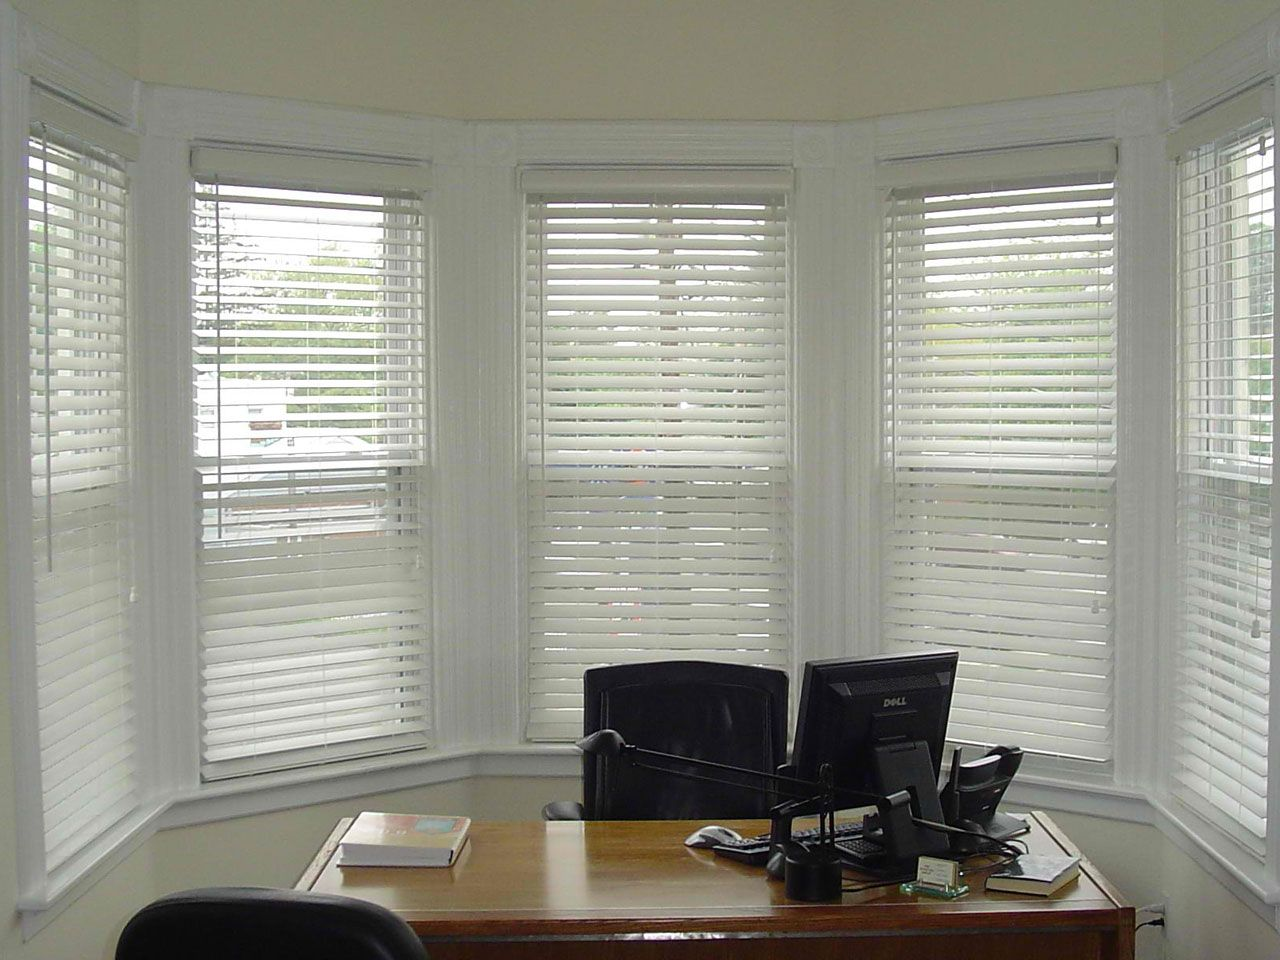 Protecting Interior Room from Sunshine by Installing Roller Blinds ...